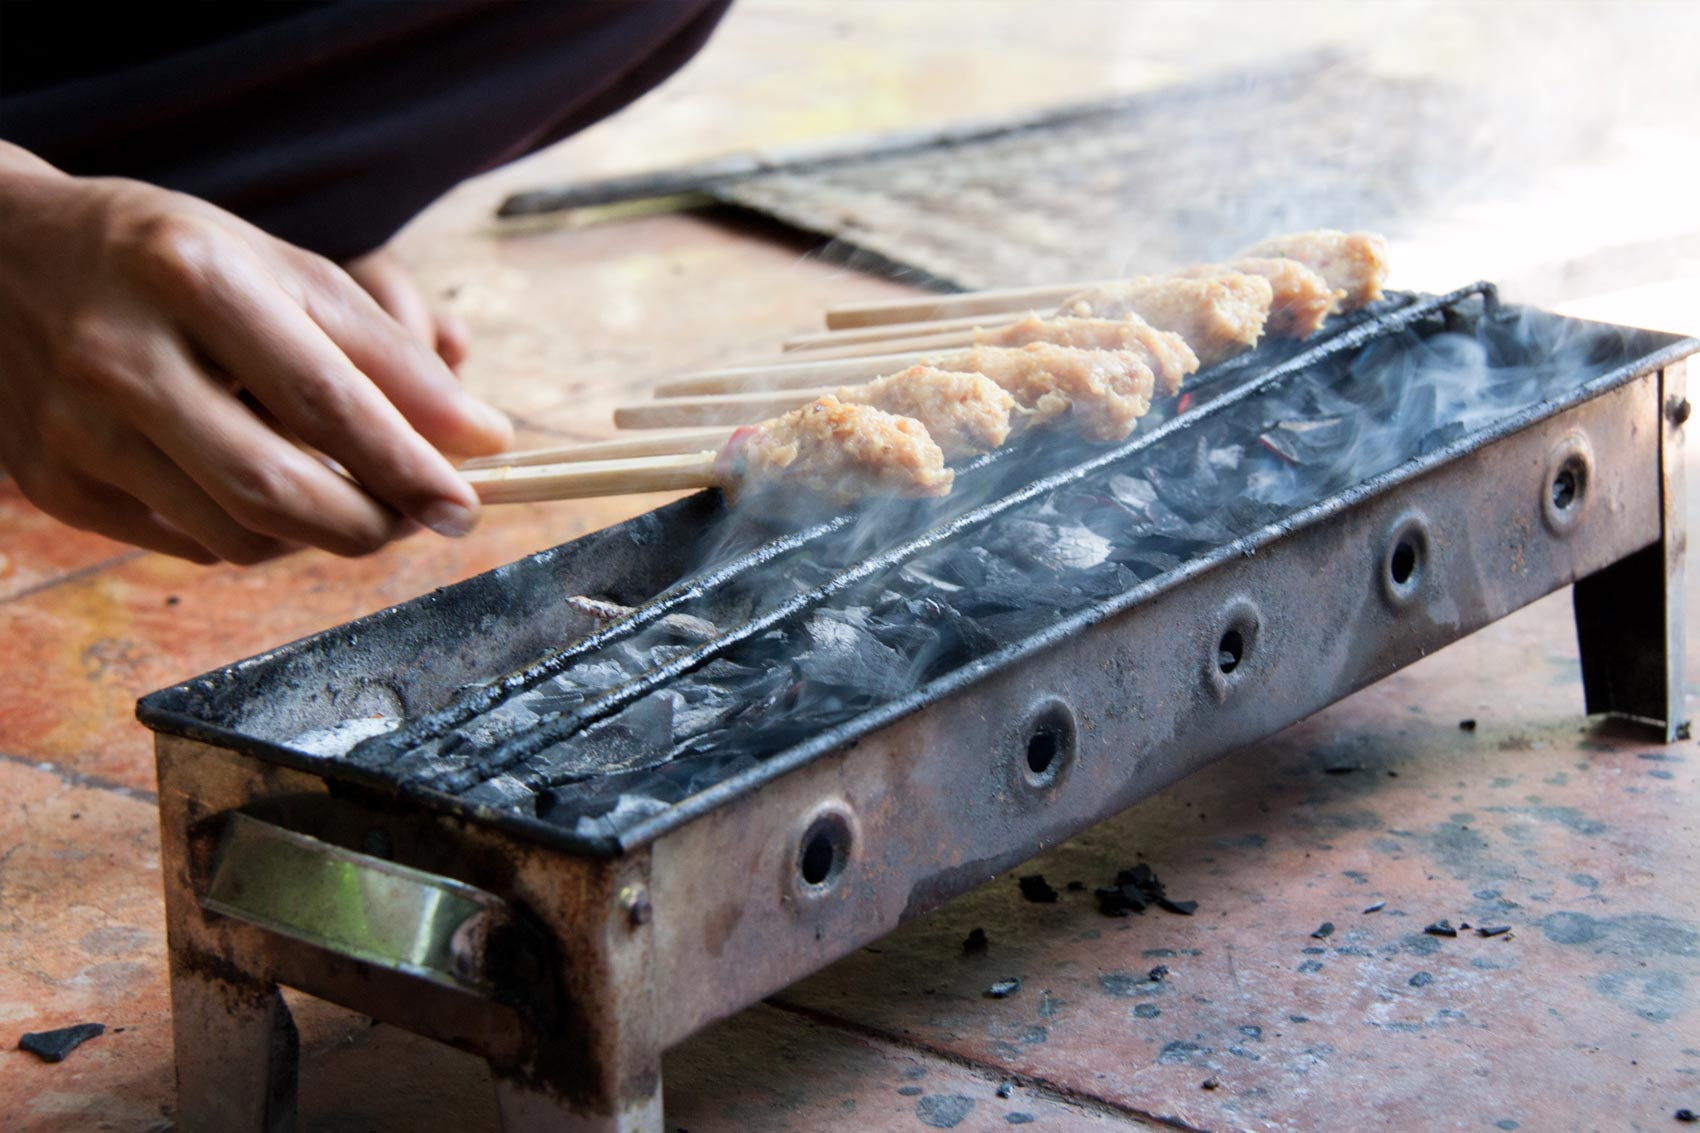 Chicken Satay is always prepared for religious ceremonies, and traditionally prepared by men, as its shape is symbolic of war. #Bali